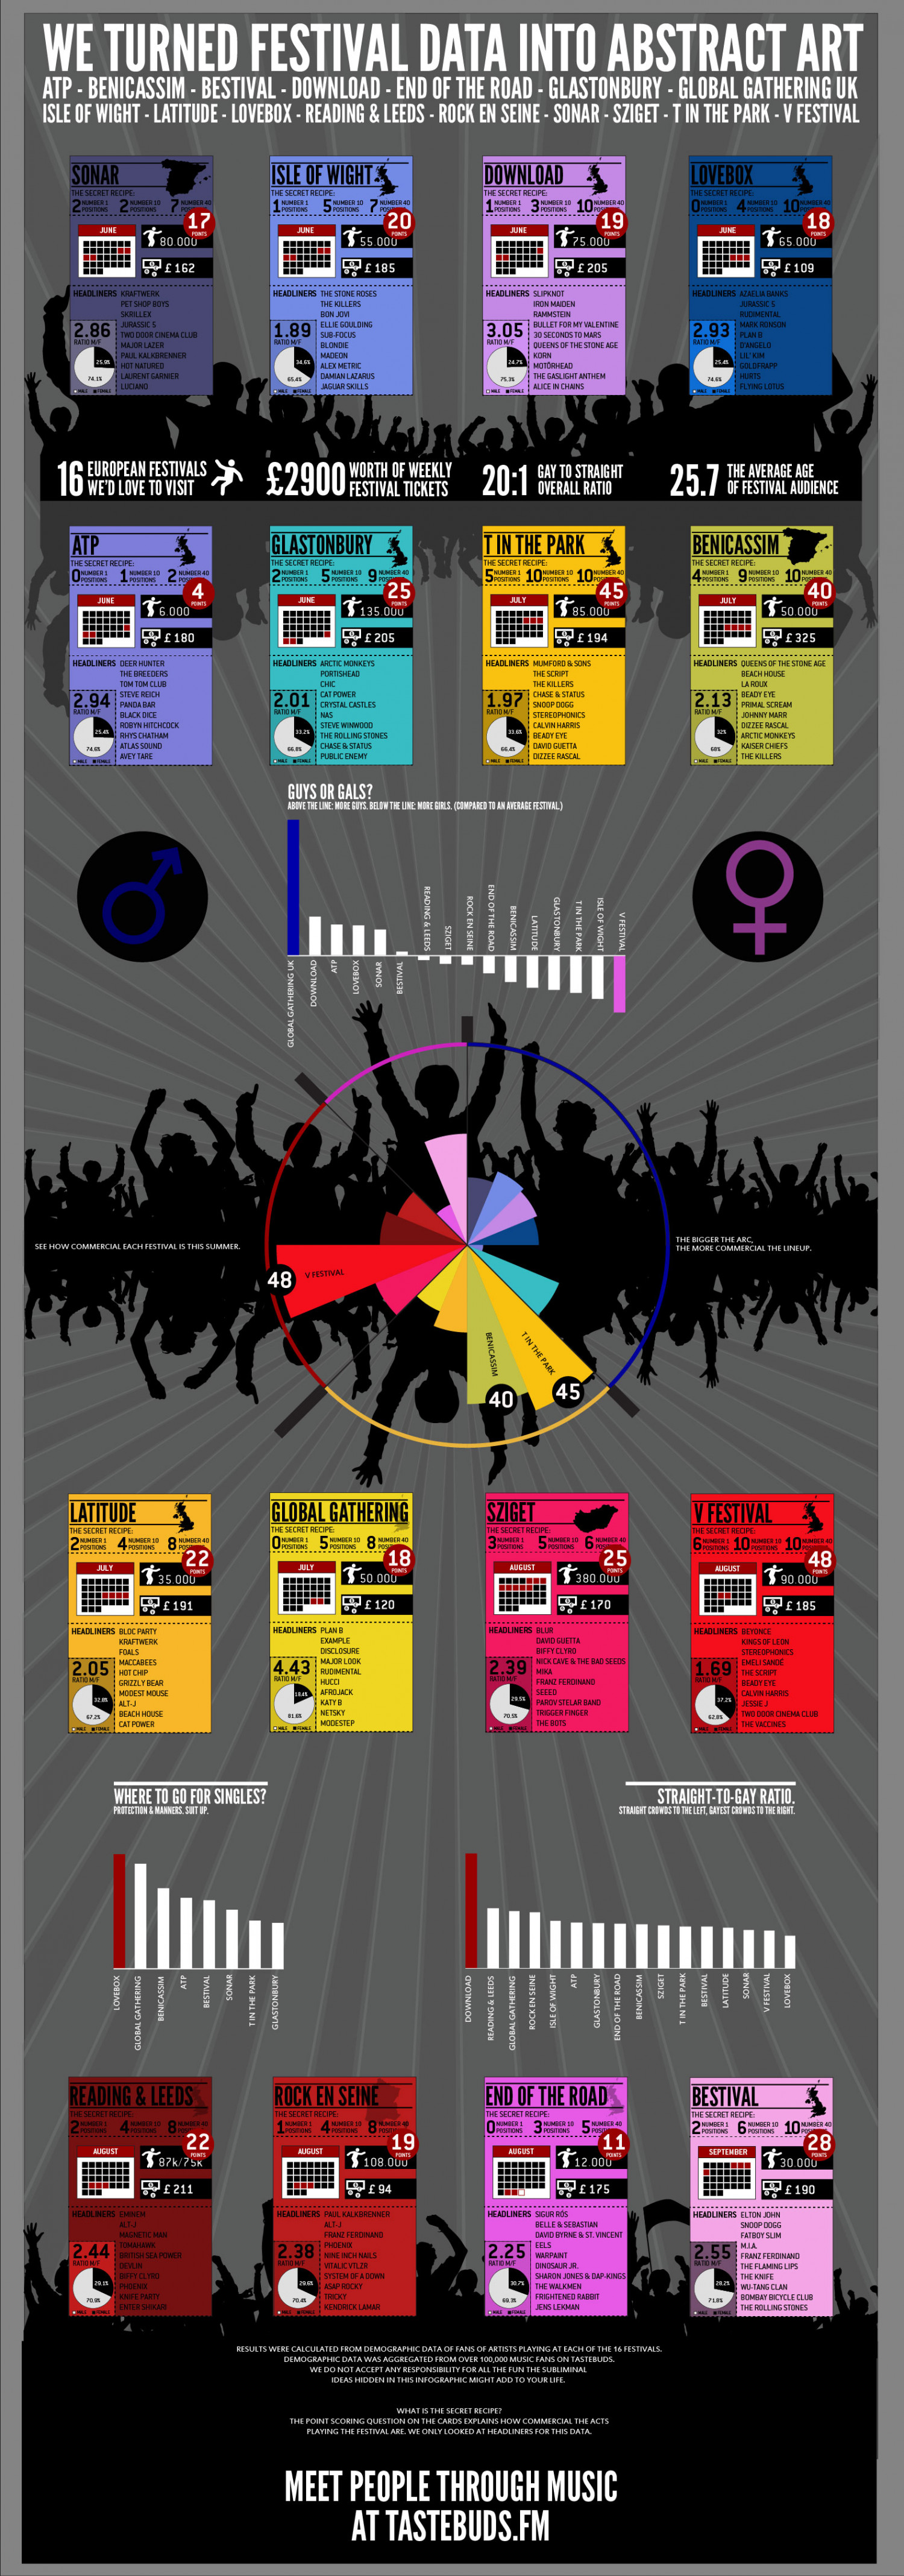 The 2013 Festival Season Infographic